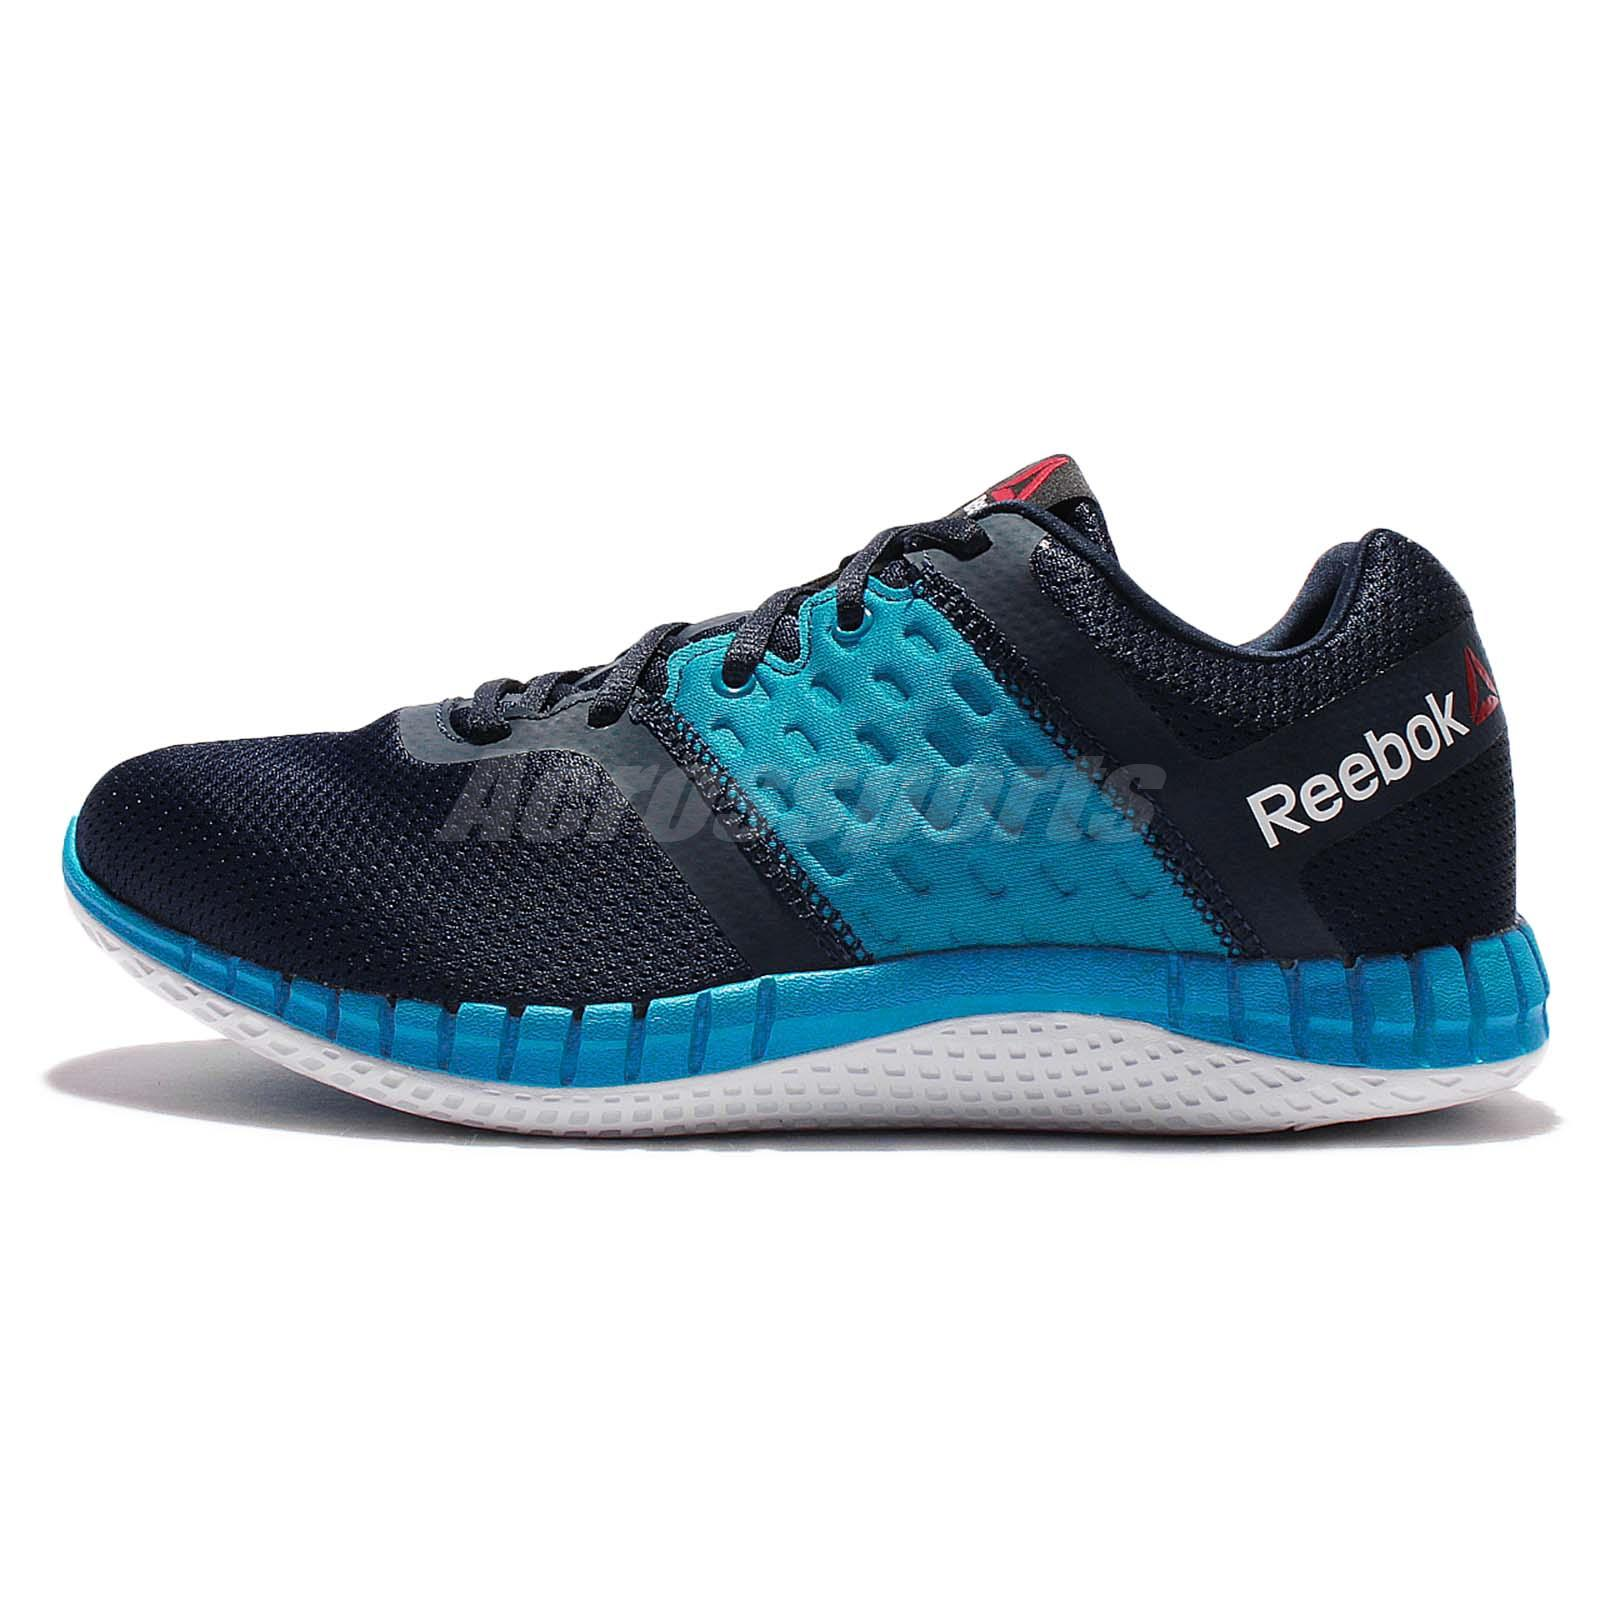 Reebok ZPrint Run Neo Blue Black Mens Running Shoes Sneakers AR3032